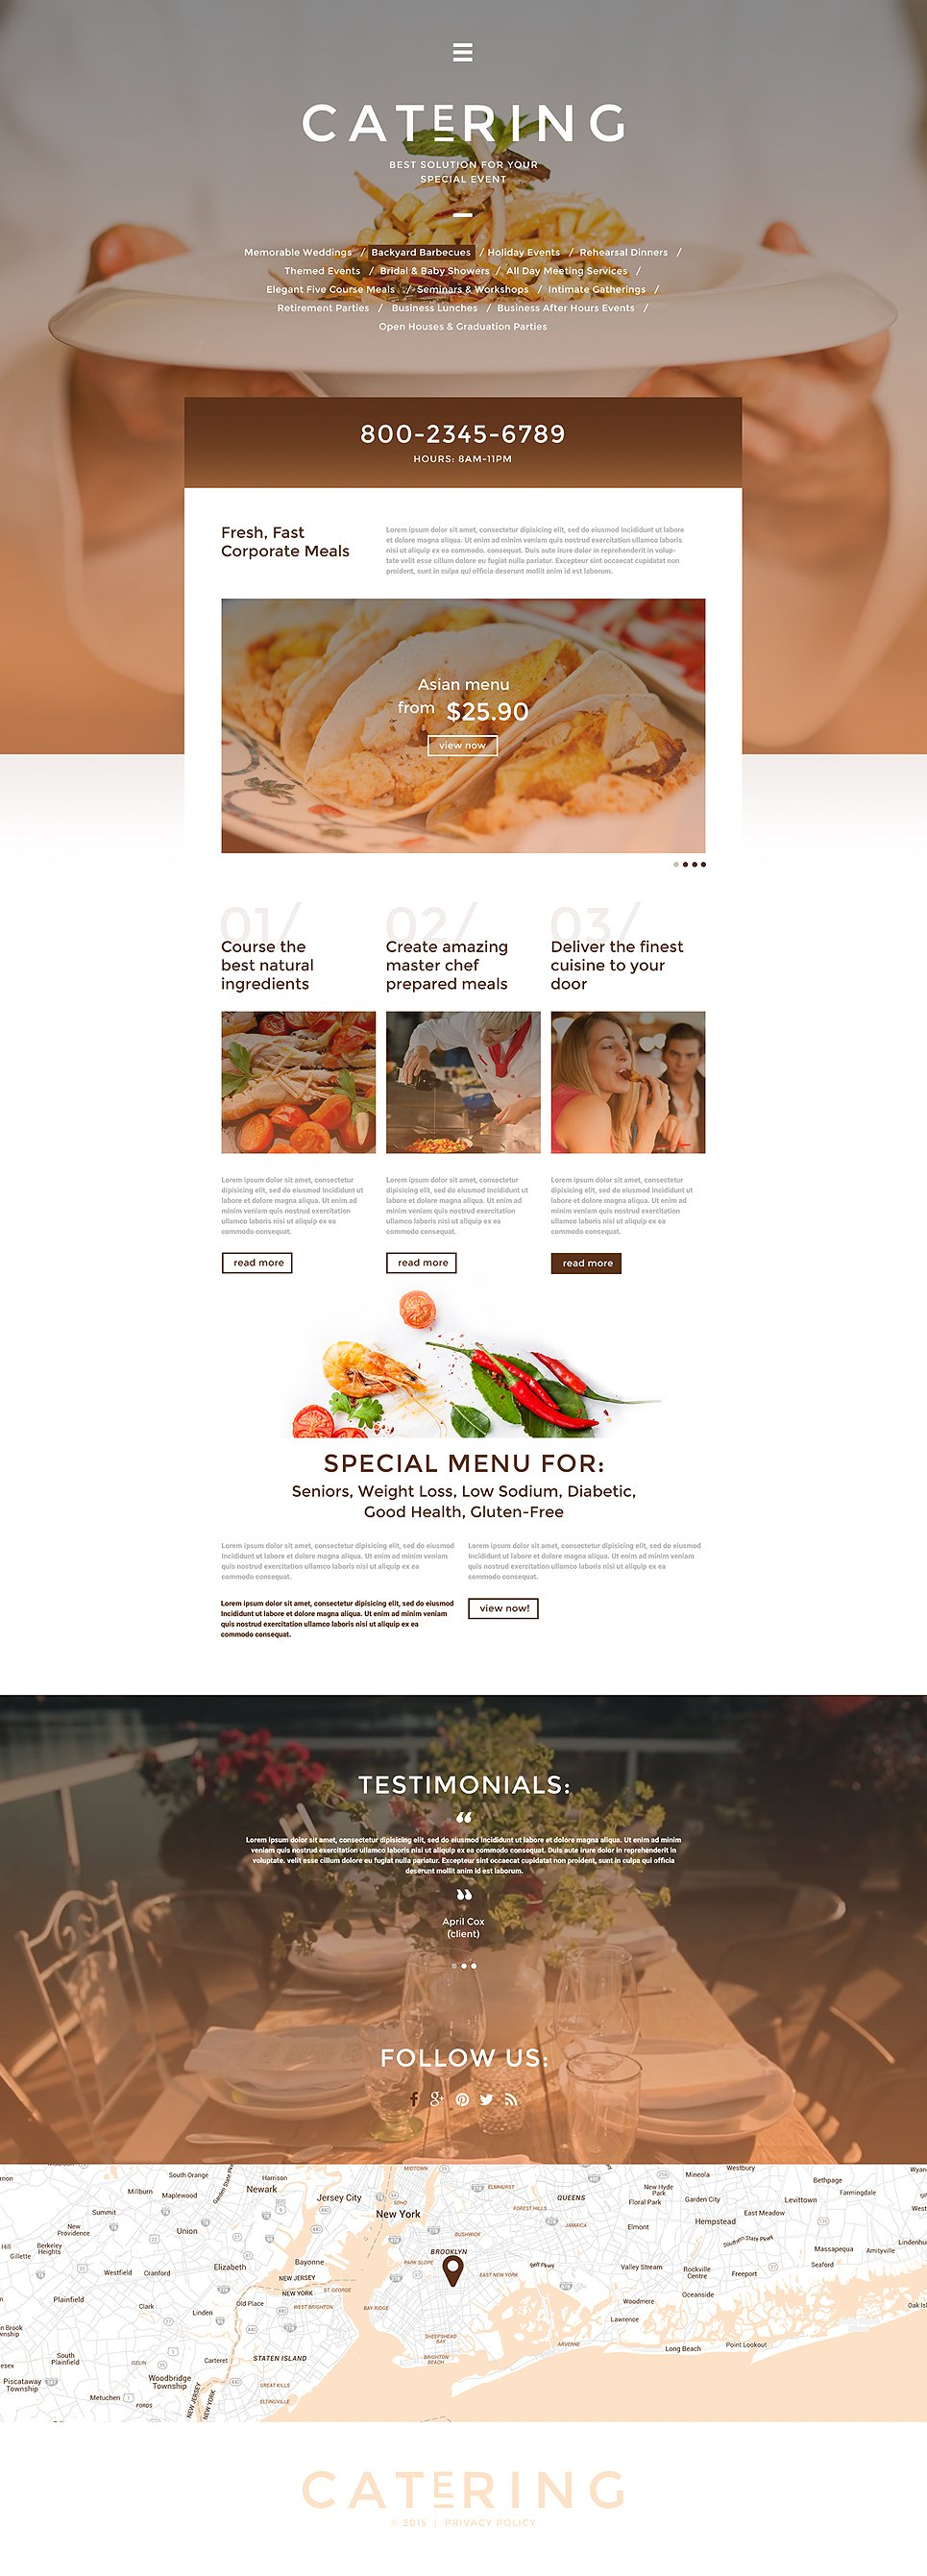 Catering Solutions template illustration image